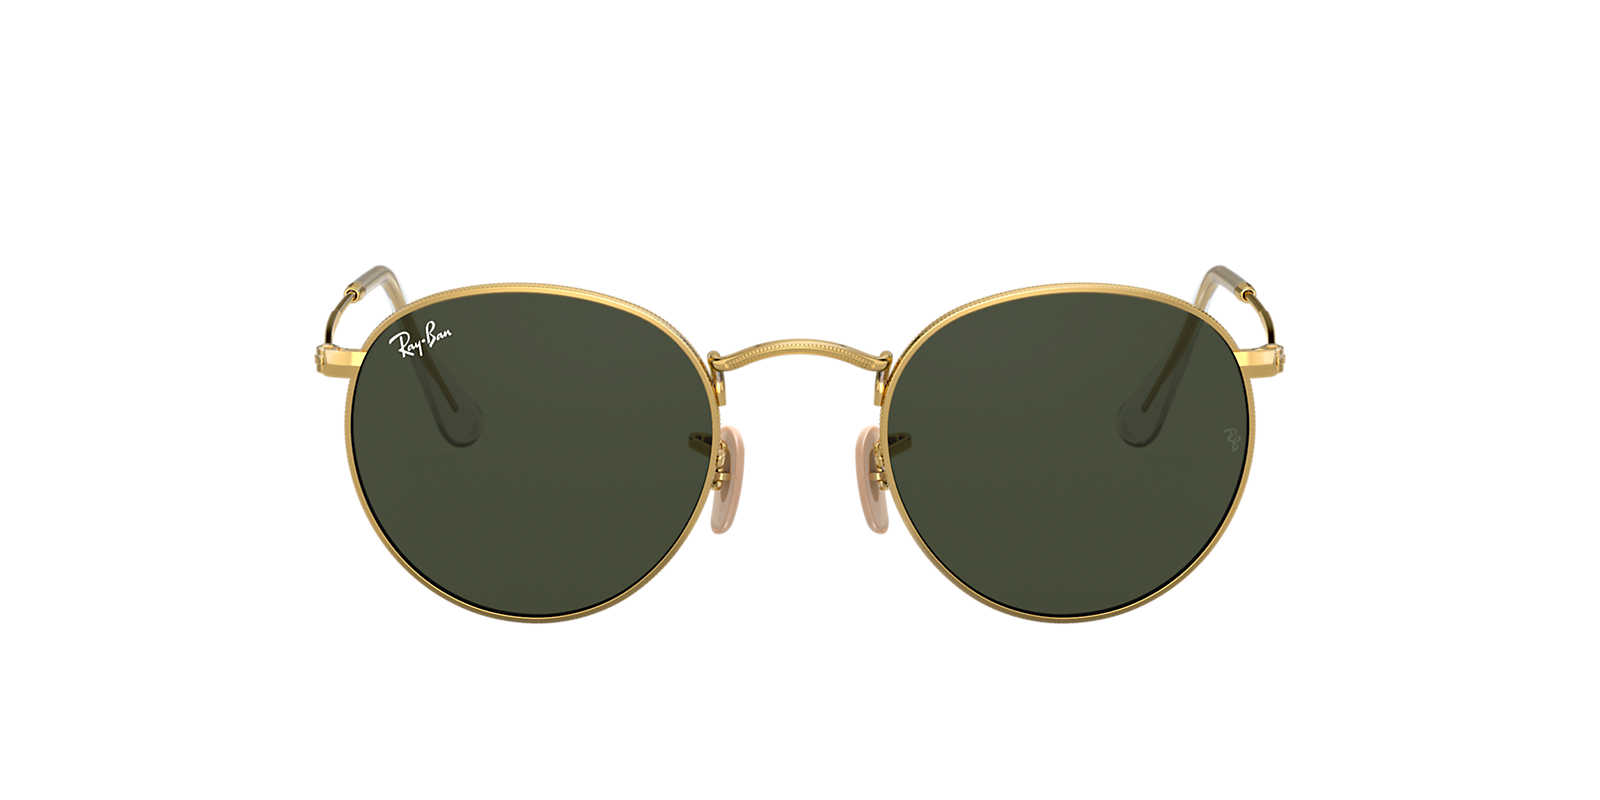 Ray ban sunglasses with price - Rb3447 53 Round Metal Rb3447 53 Round Metal Ray Ban